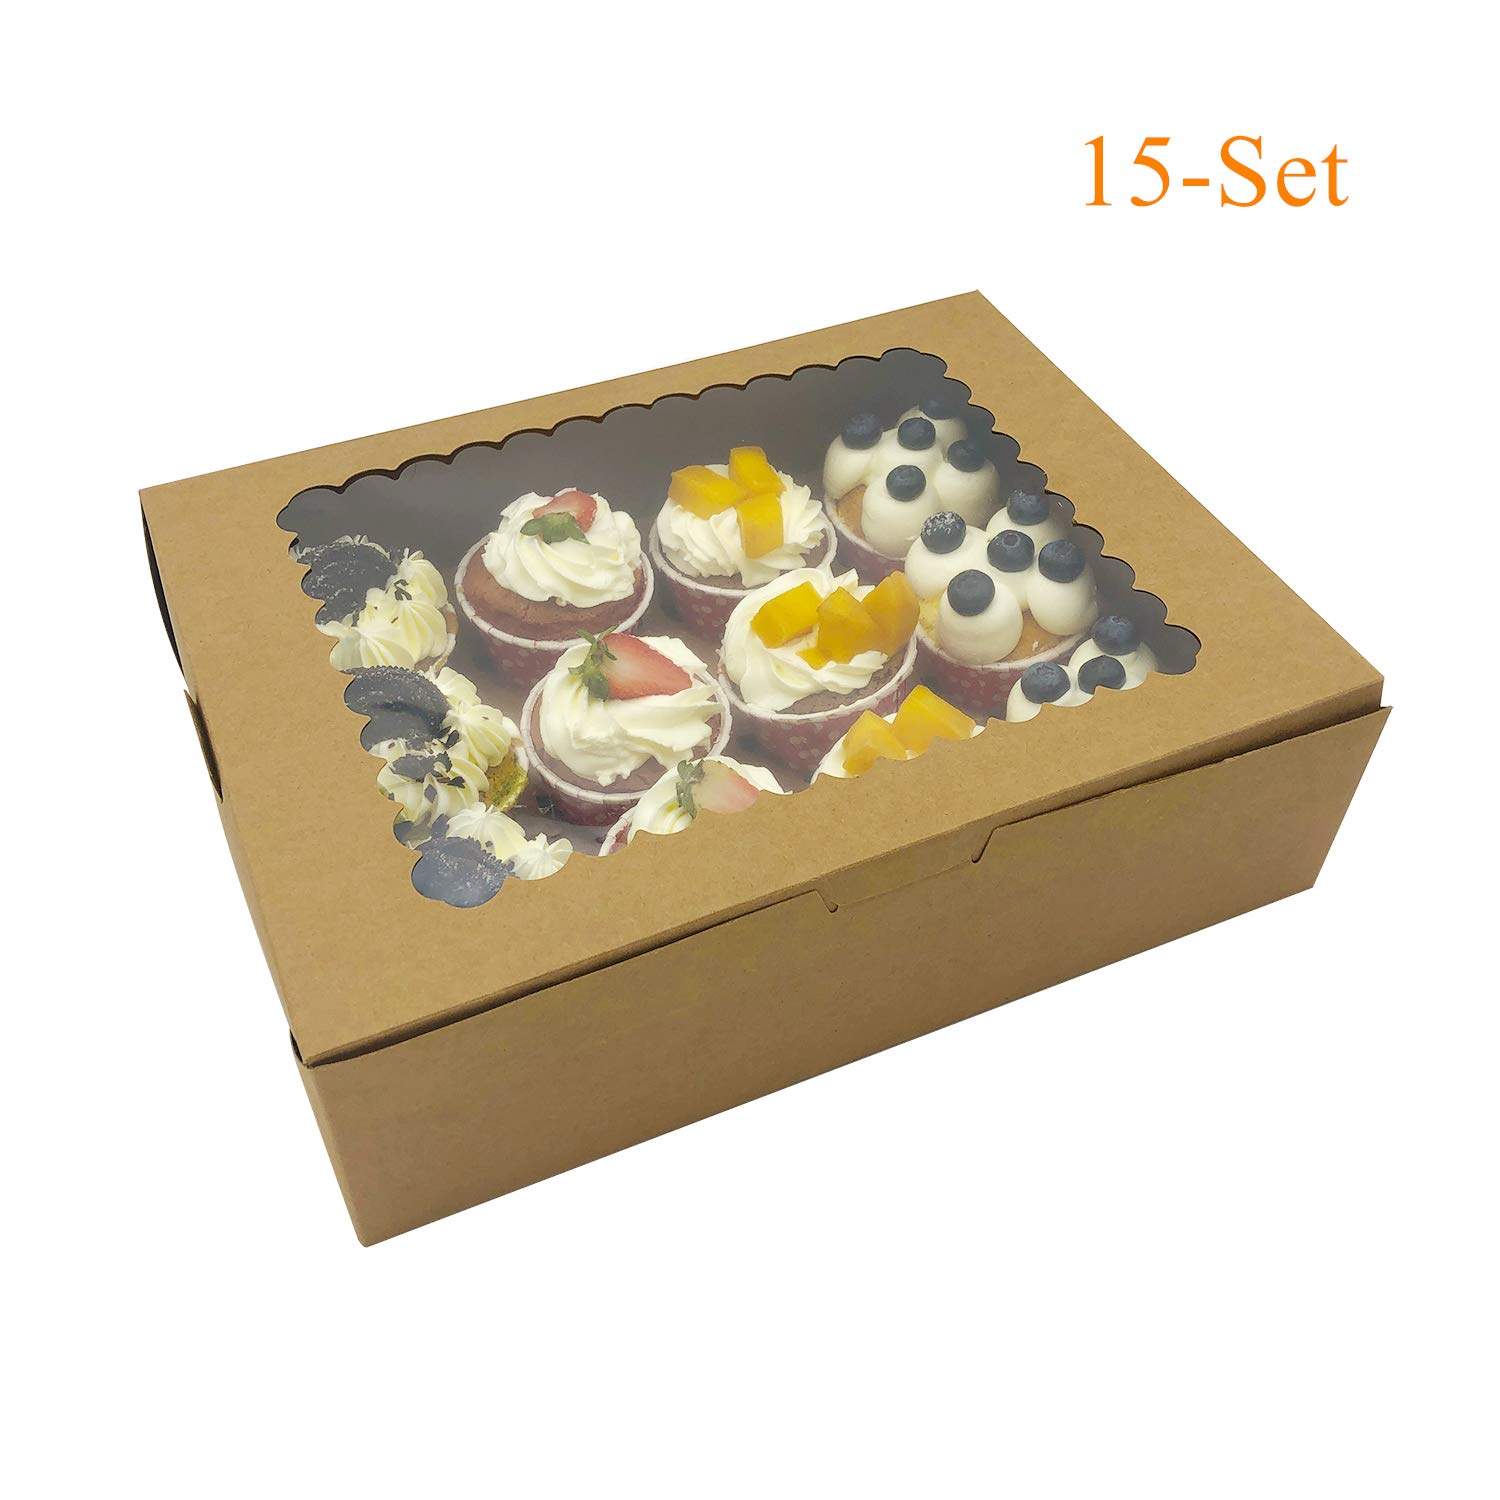 15-Set Cupcake Boxes Holds 12 Standard Cupcakes, Brown Cupcake Carrier, Cupcake Containers, Food Grade Kraft Cupcake Holders for Cookies, Bakeries, Muffins and Pastries